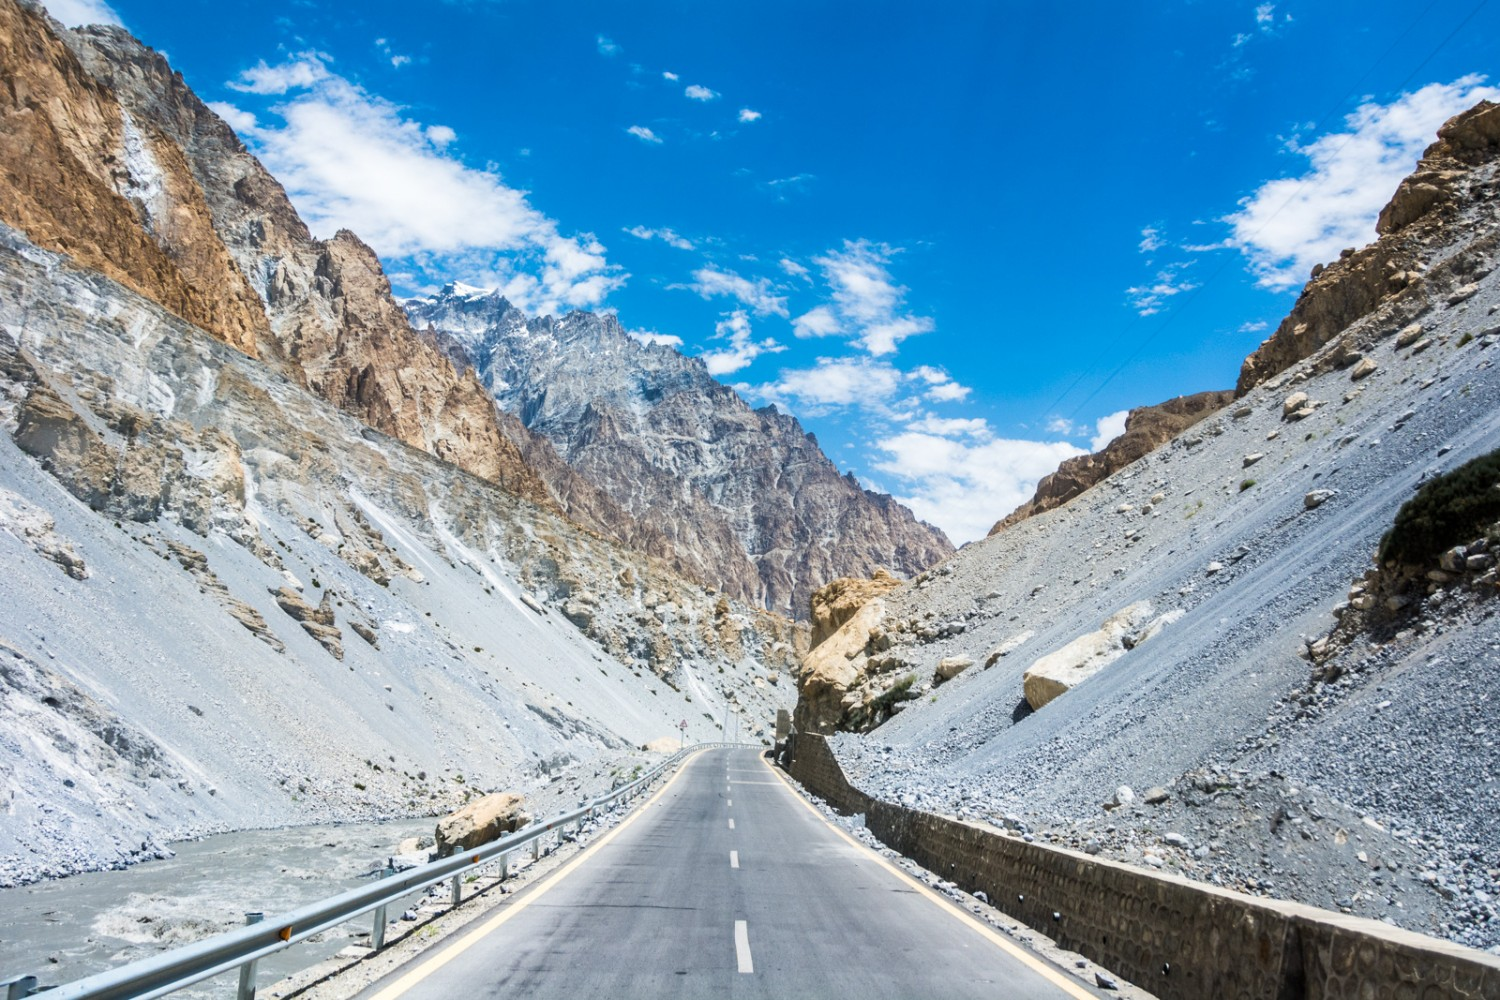 Epic Summer Road Trip Ideas - Karkoram Highway in Pakistan